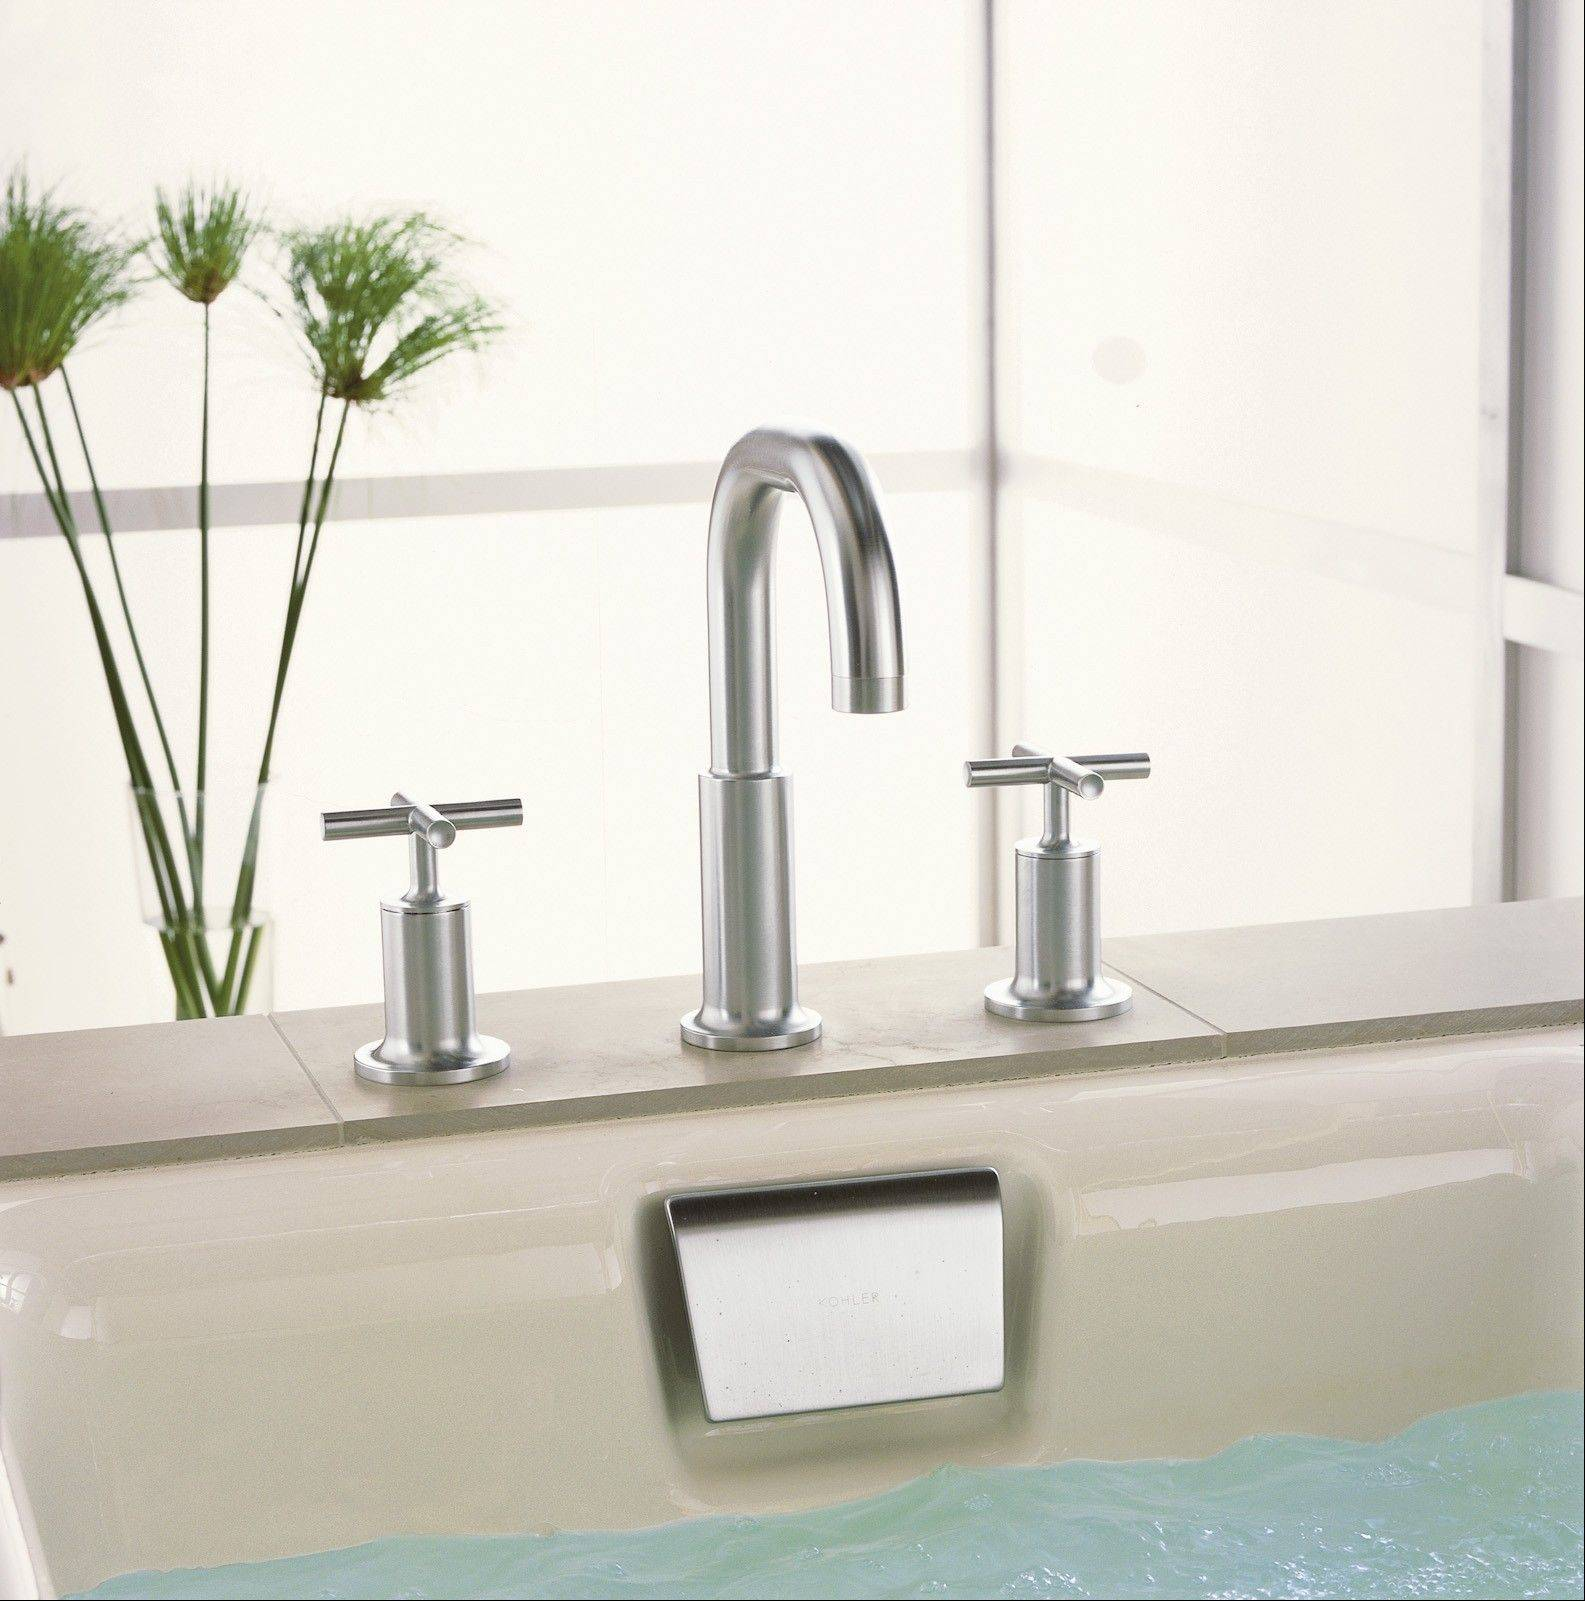 Tub fillers can look and operate like a regular two-handle bathroom faucet. But as you noticed, they're usually larger than a standard sink faucet.